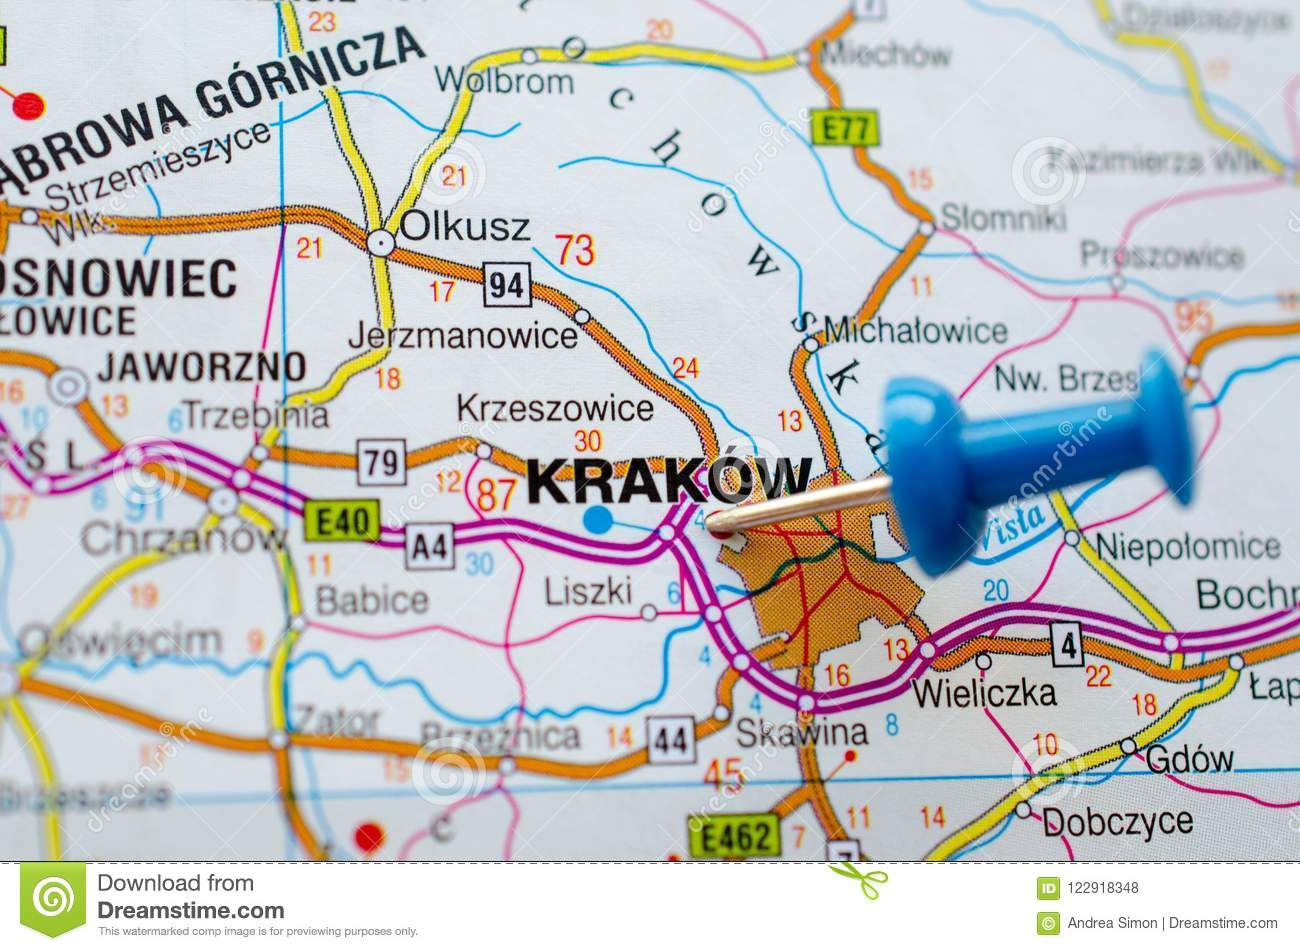 Krakow Map on jiangmen city map, venice map, wawel castle map, paris charles de gaulle map, poland map, poznan map, moscow map, bregenz austria map, naples map, kovno map, malopolska map, mielec map, stettin map, transilvania map, carpathian mountains map, singapore hotel map, cracovia polonia map, gdansk map, sarajevo map, milan map,